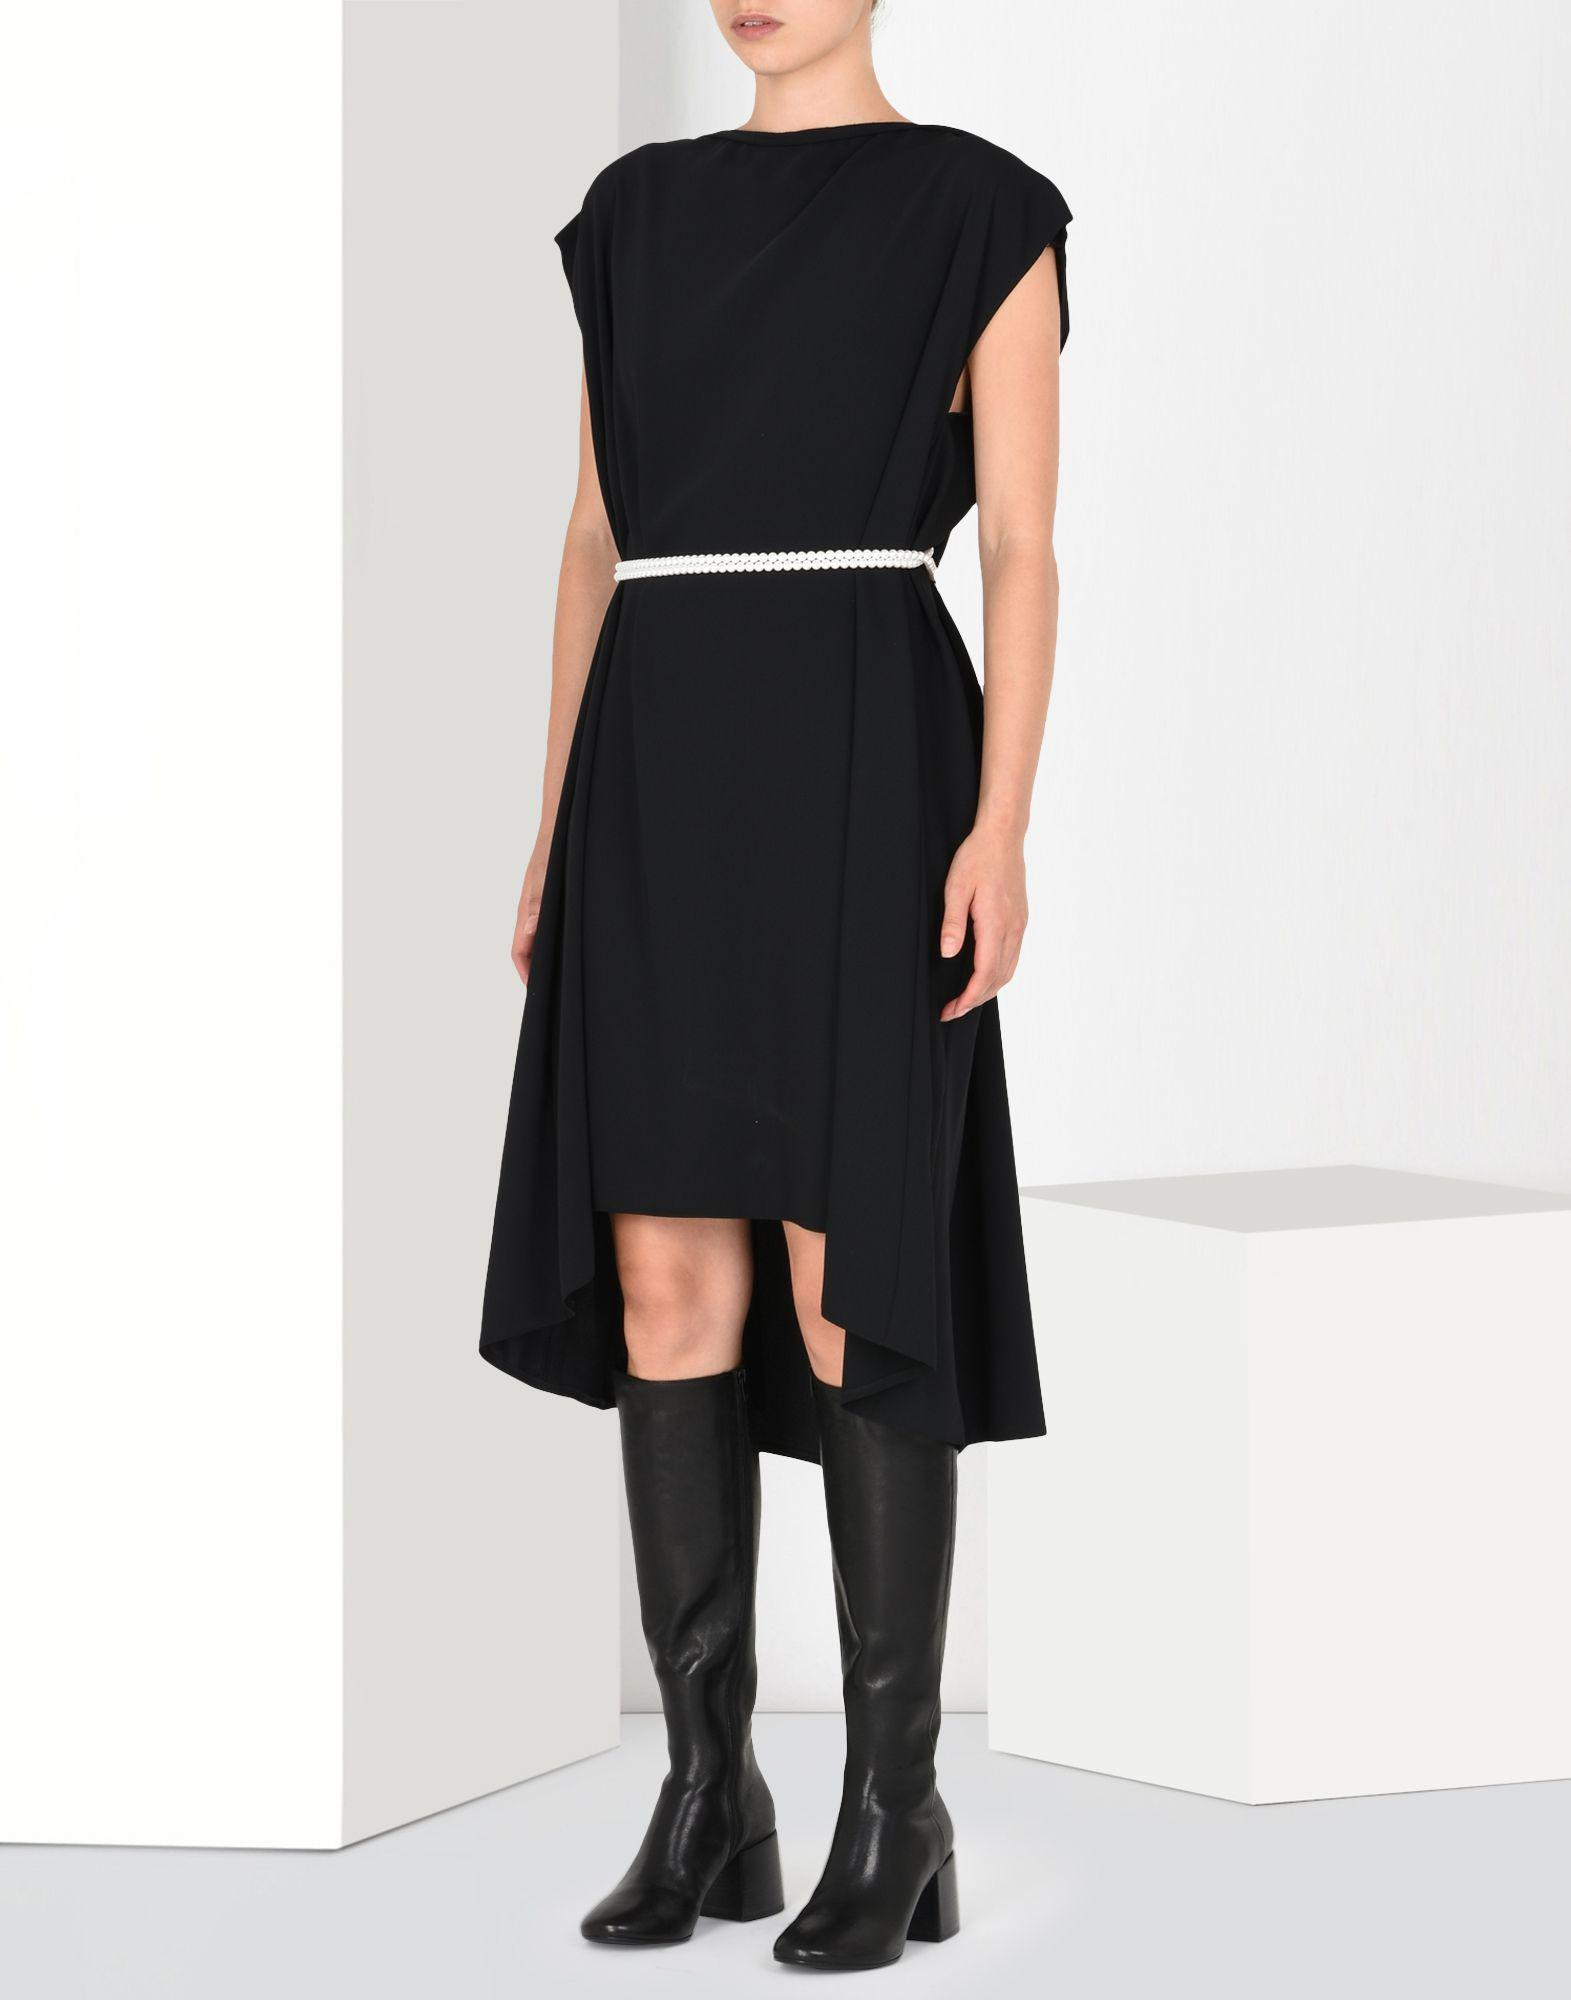 be4d9922f36842 mm6-by-maison-martin-margiela-Black-Oversized-Knee-length-Dress.jpeg